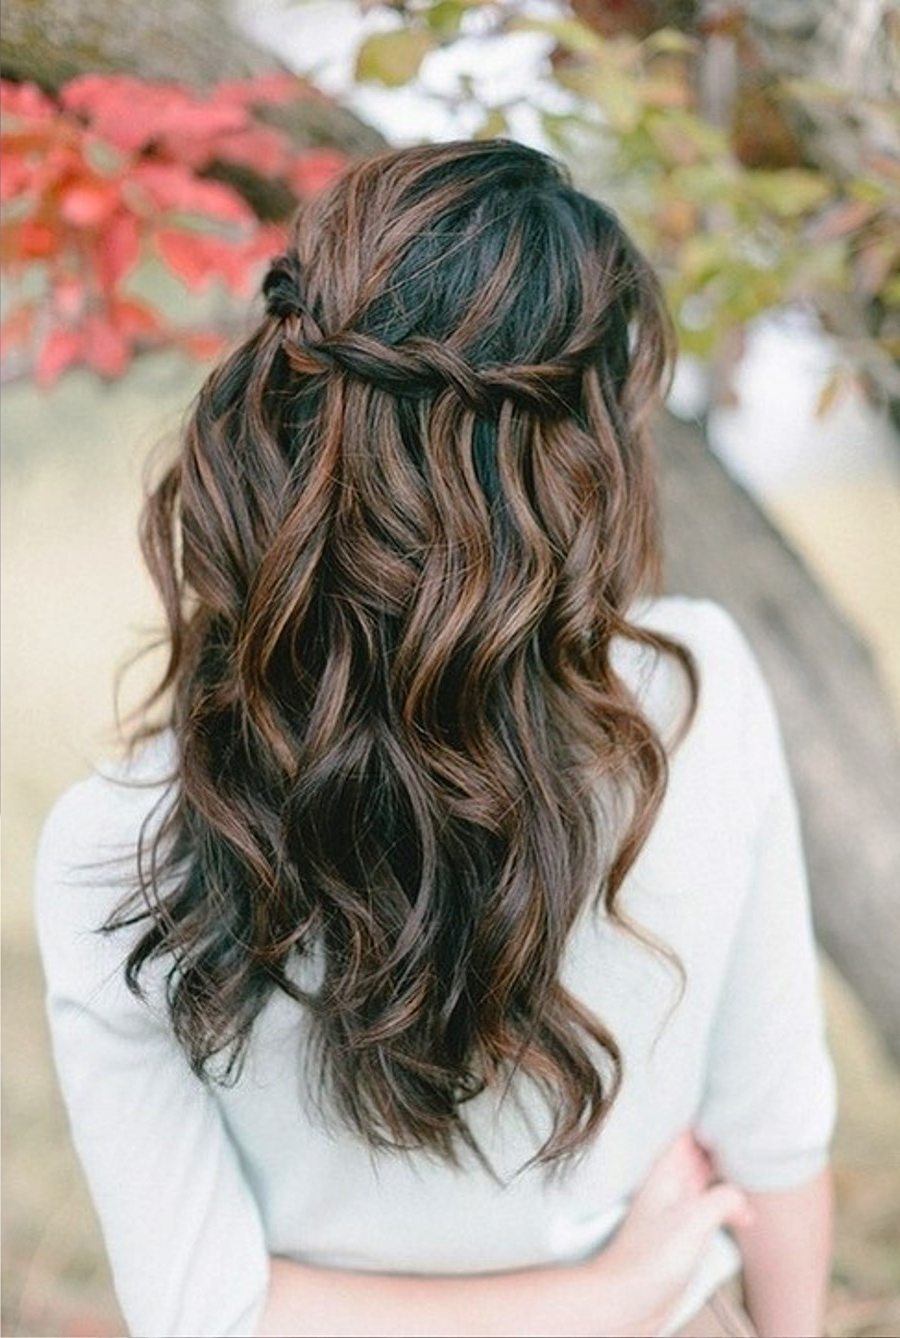 Popular Braid And Curls Hairstyles Intended For 15 Gorgeous Beach Hair Ideas For Summer (View 15 of 15)